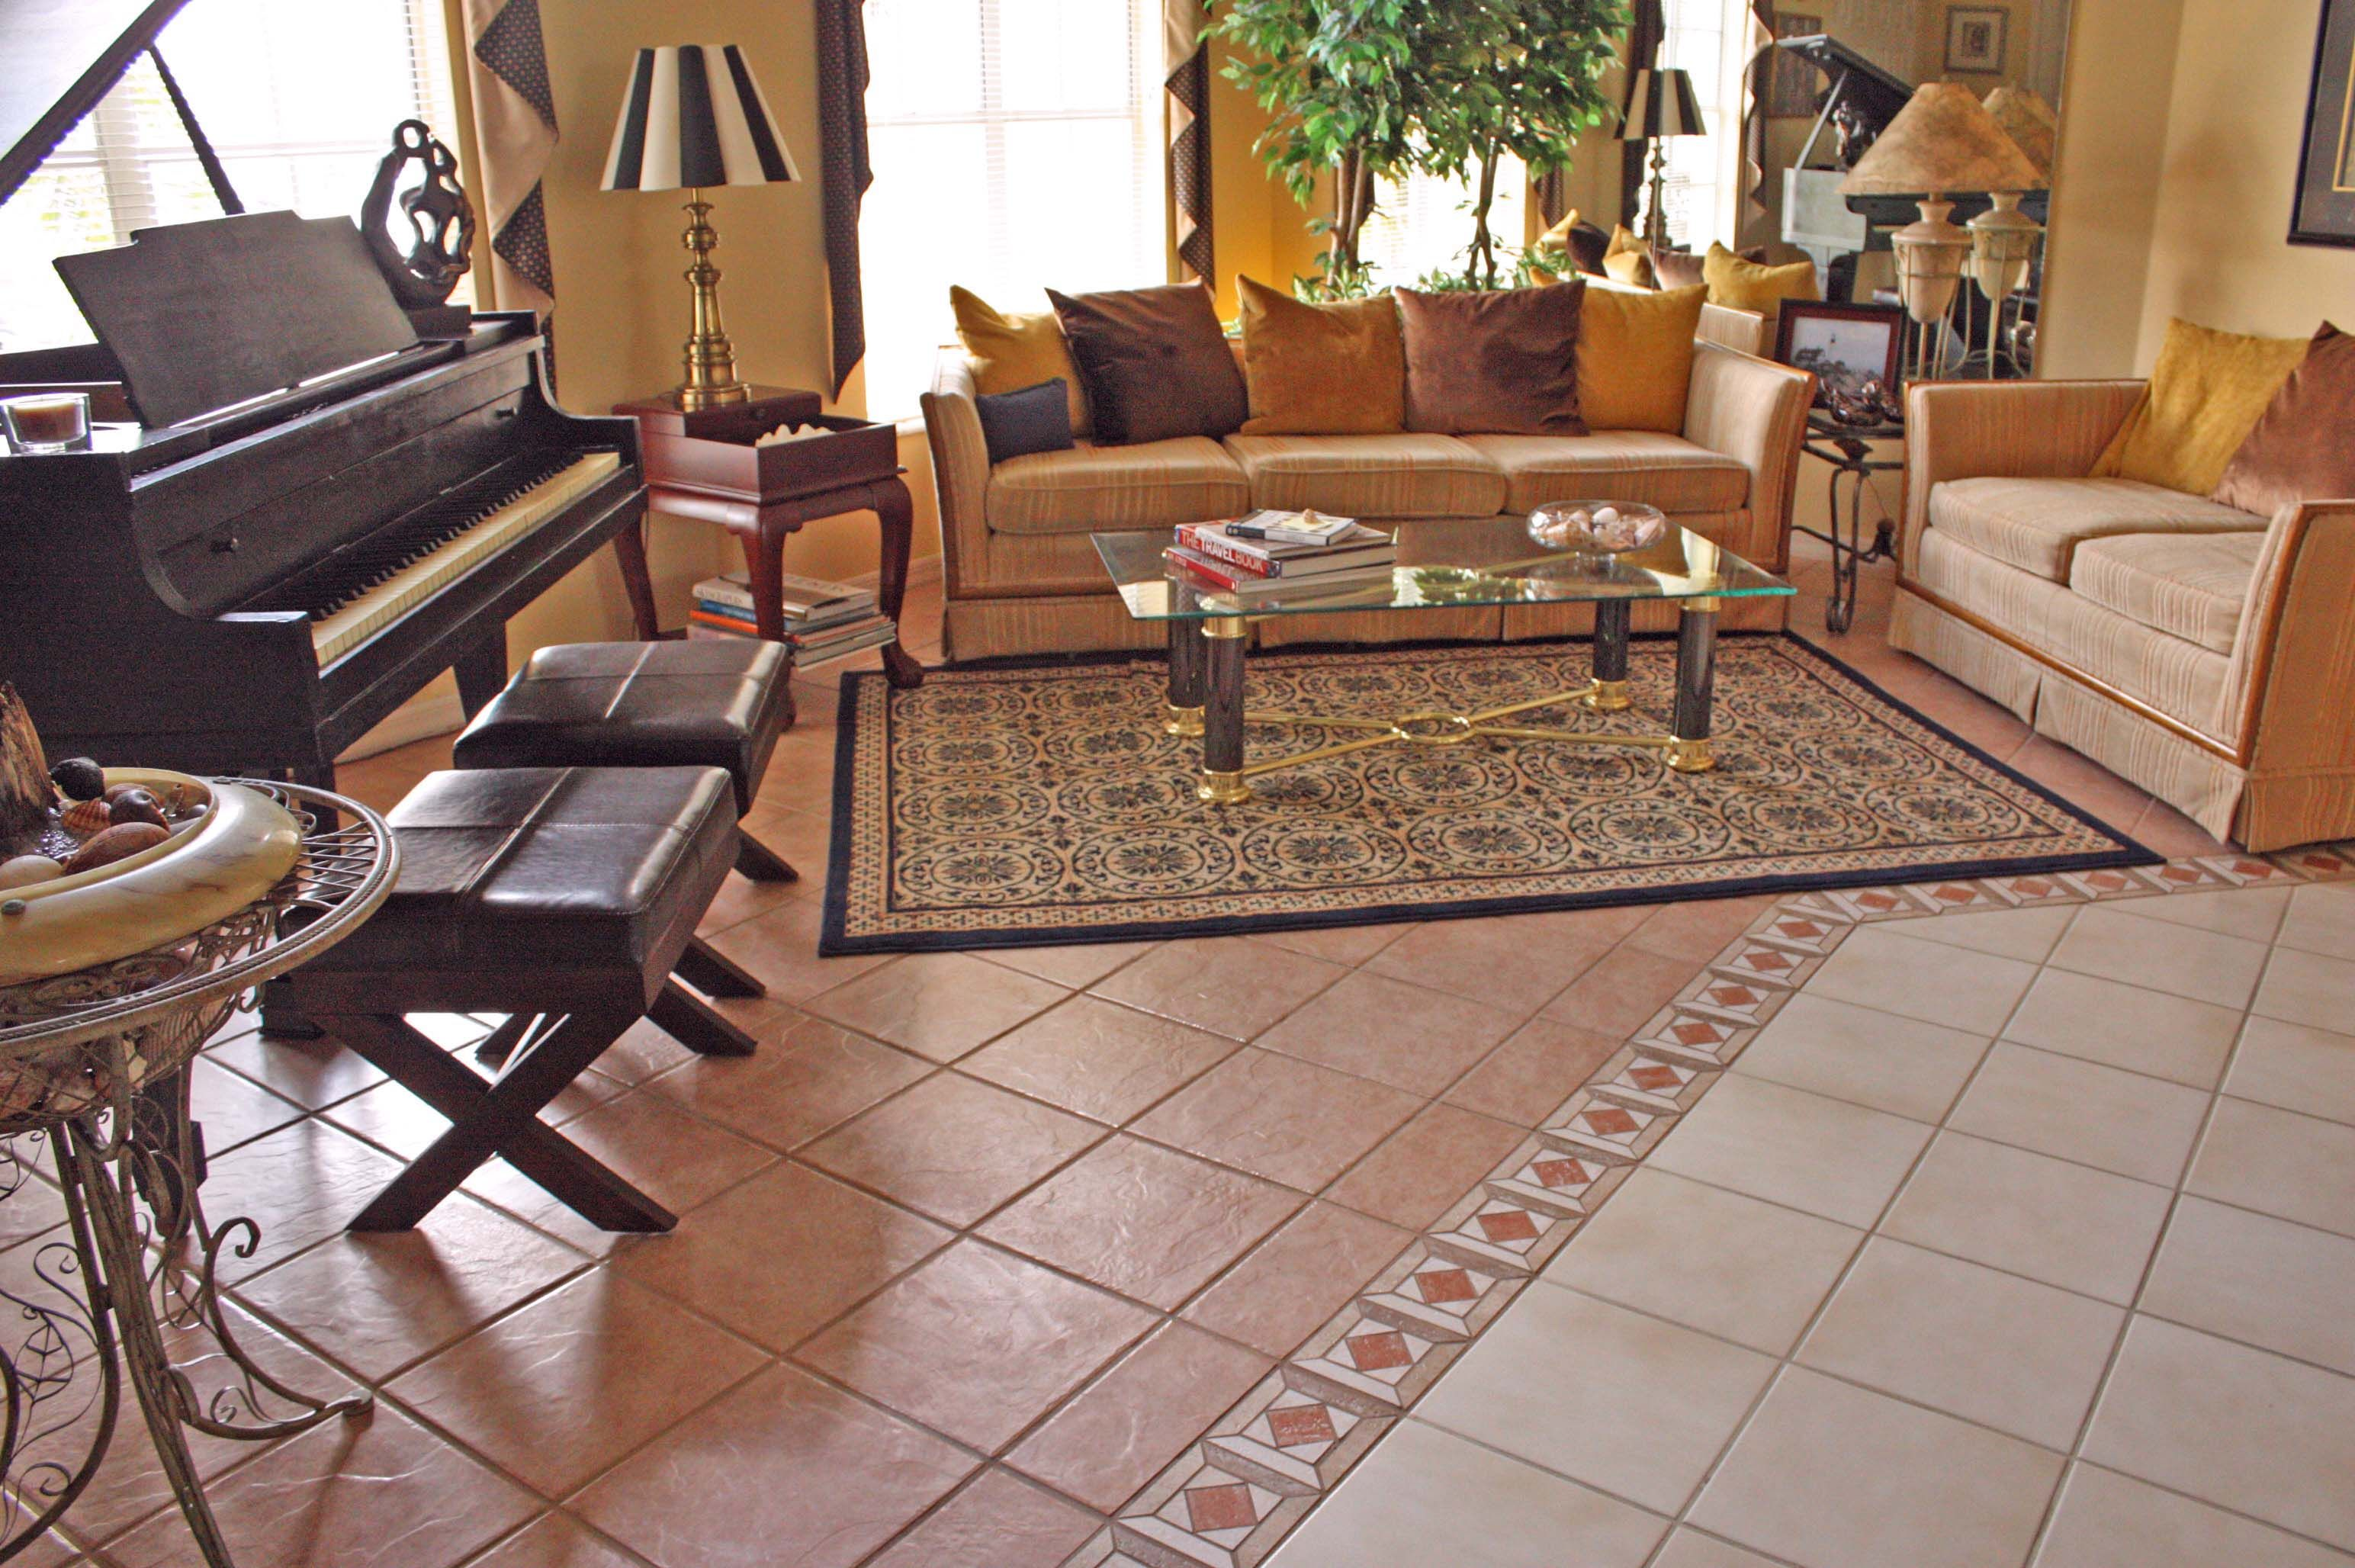 The Pros and Cons of Ceramic Tile Flooring Living room